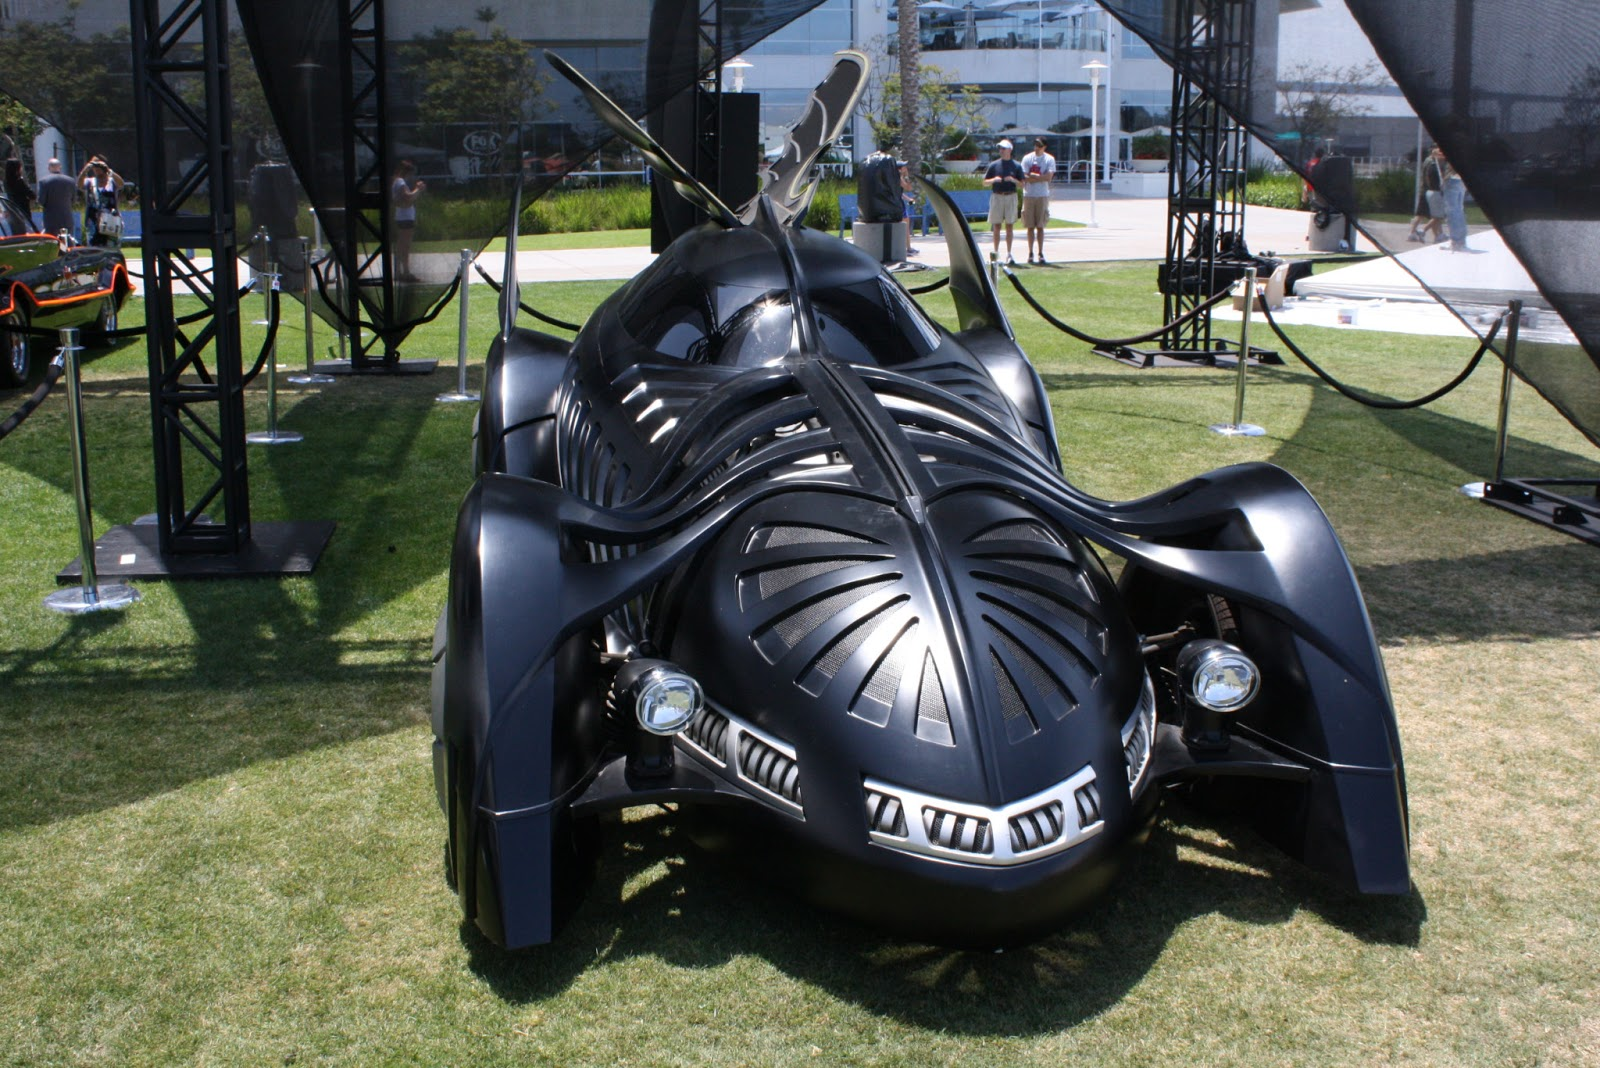 The Real Batman's vehicles